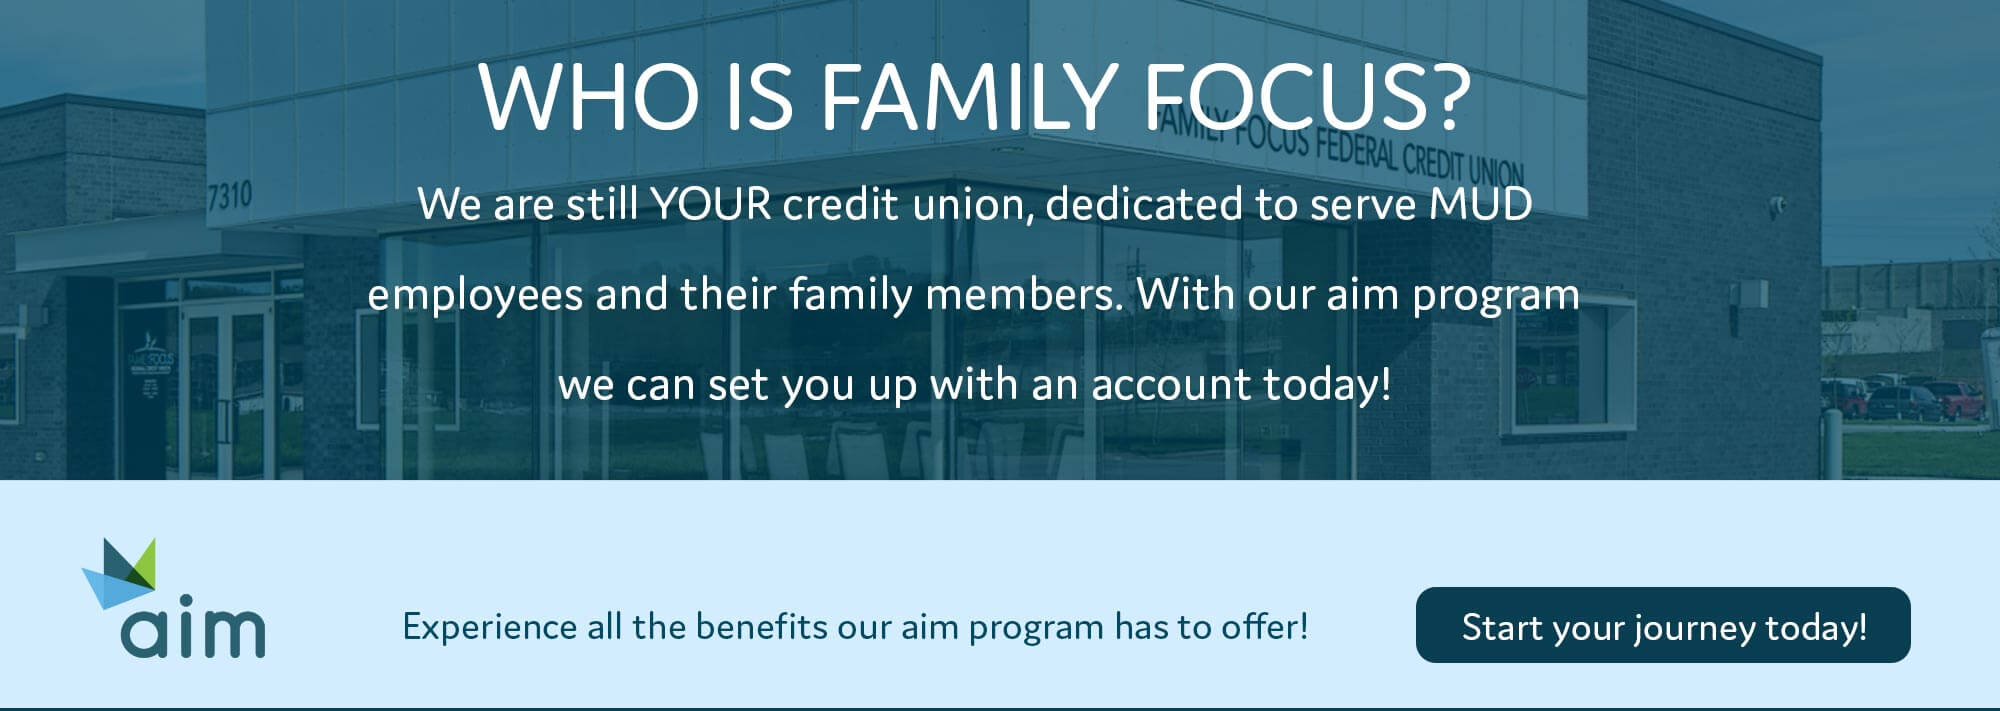 Who is family focus? We are still YOUR credit union, dedicated to serve MUD employees and their family members. With our aim program we can set you up with an account today! Experience all the benefits our aim program has to offer! Start your journey today!